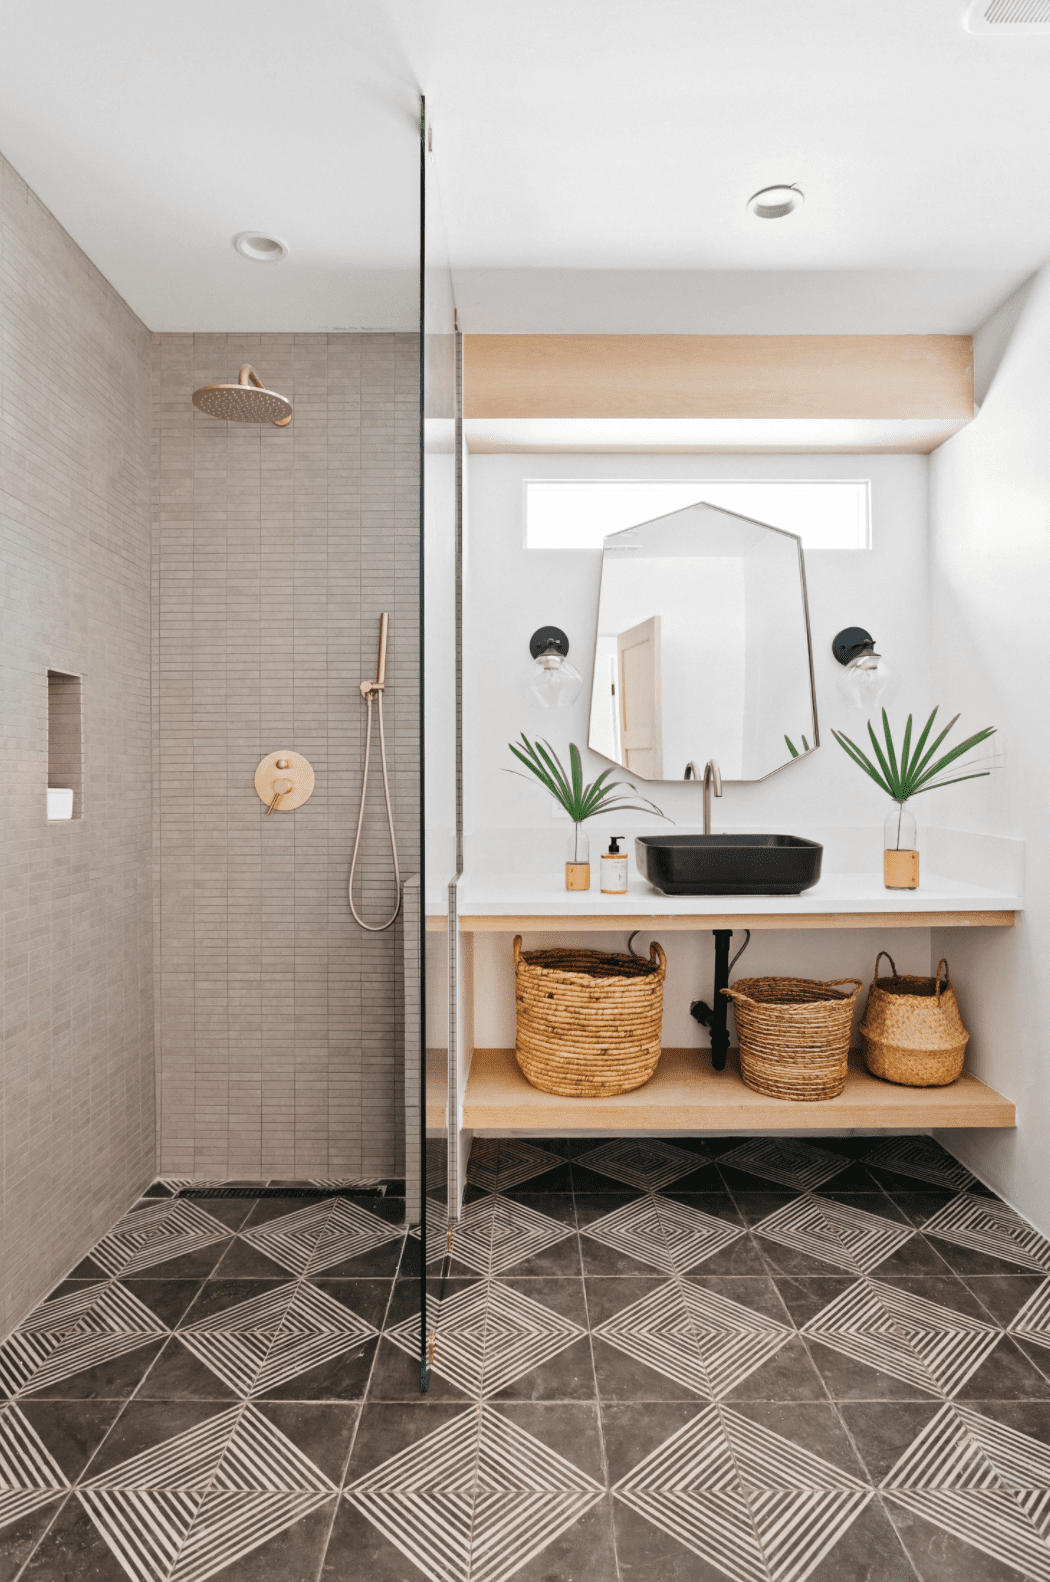 A small primary bathroom, which has been lined with the same striking floor tile from wall to wall